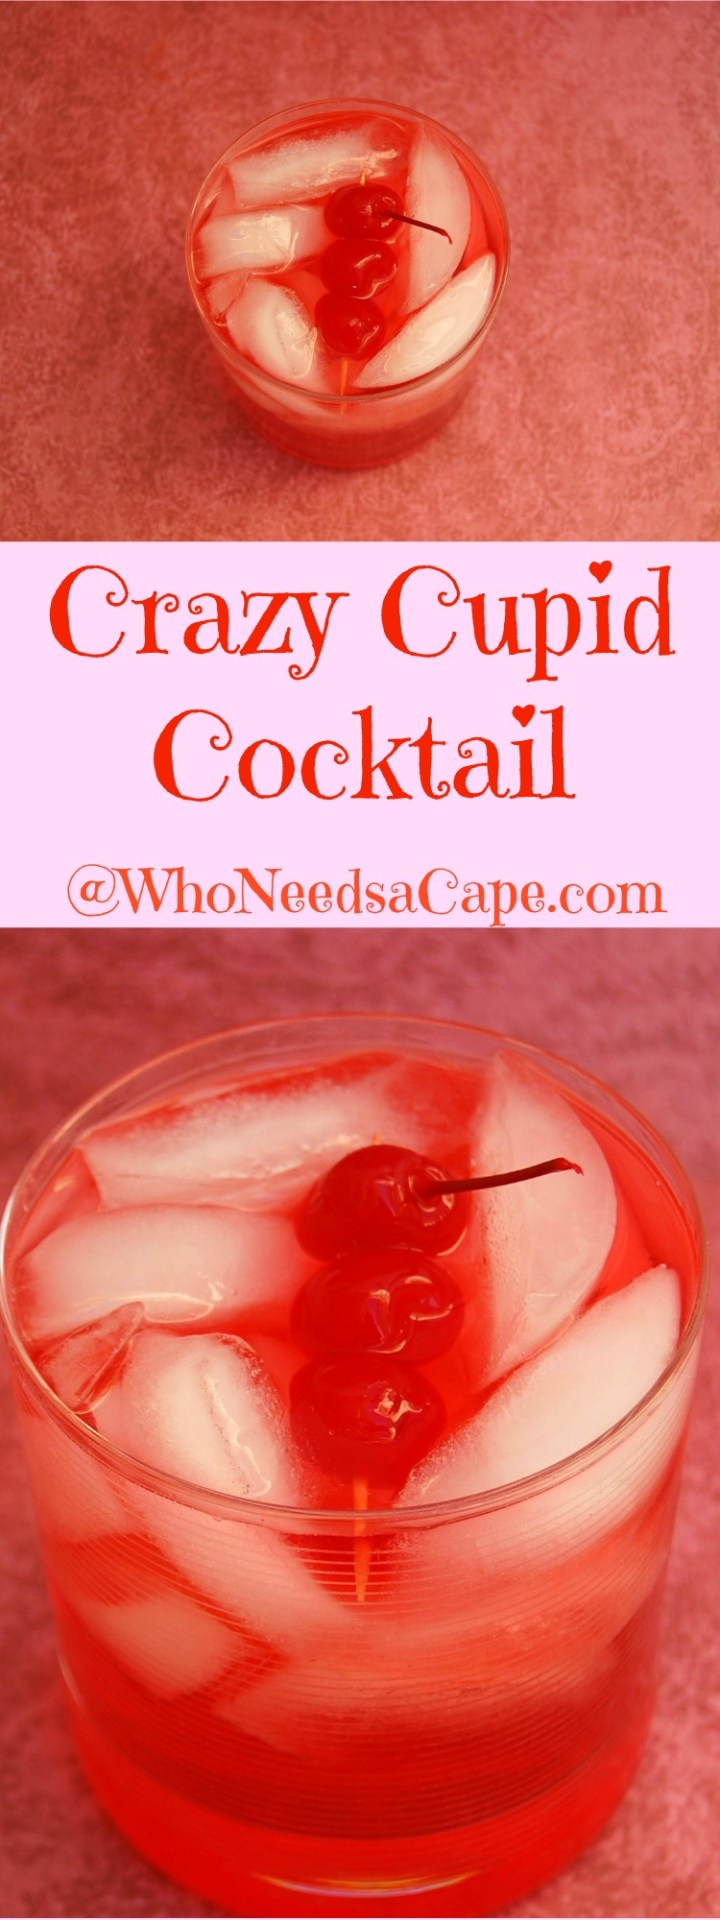 The Crazy Cupid Cocktail is a great drink. Make it with 3 ingredients! Simple Cocktail - amazing flavor!